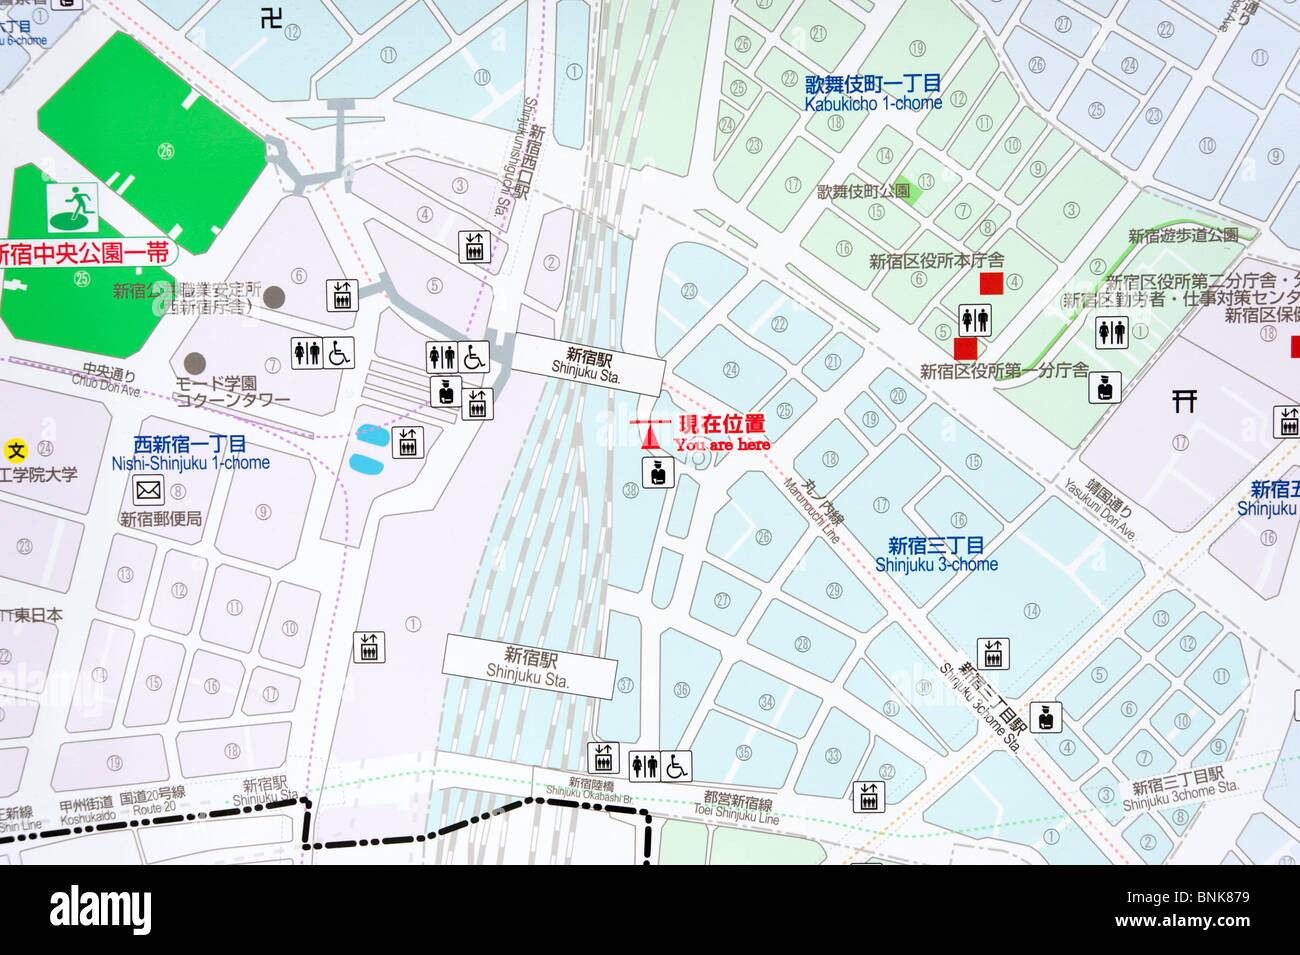 Street map of Shinjuku district showing You are here in both English